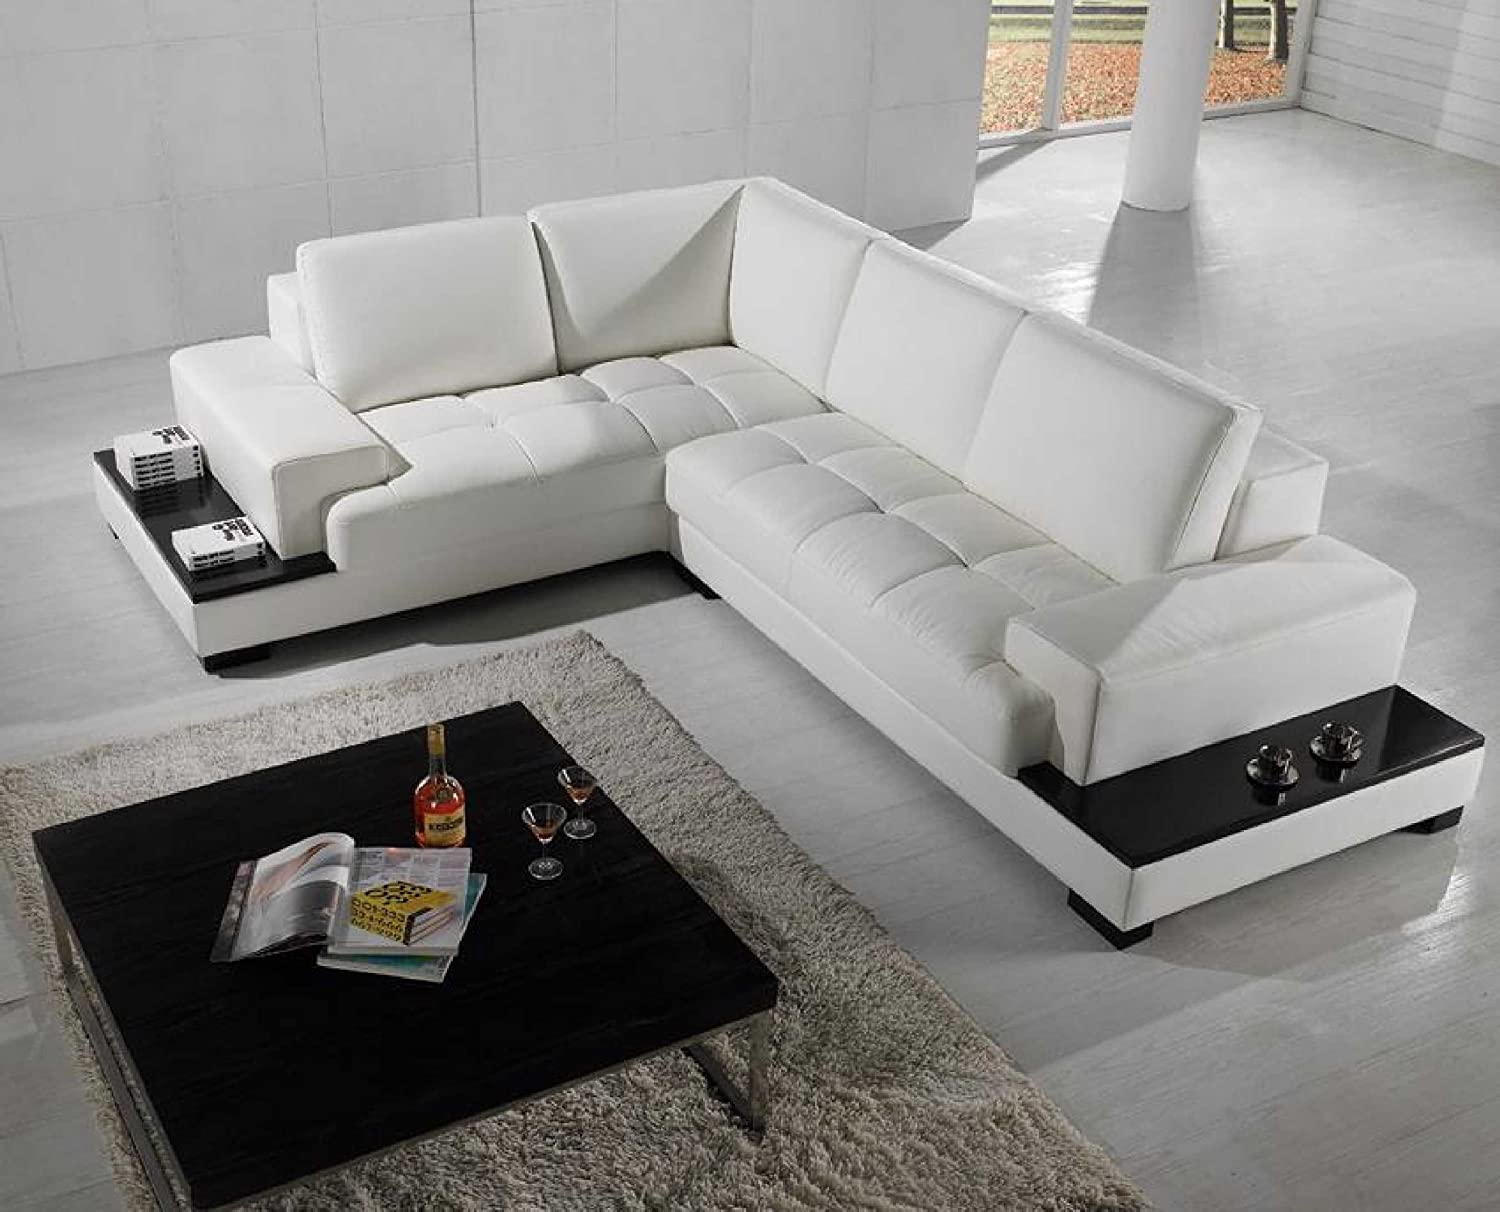 amazoncom vig furniture t modern leather sectional kitchen  dining. amazoncom vig furniture t modern leather sectional kitchen